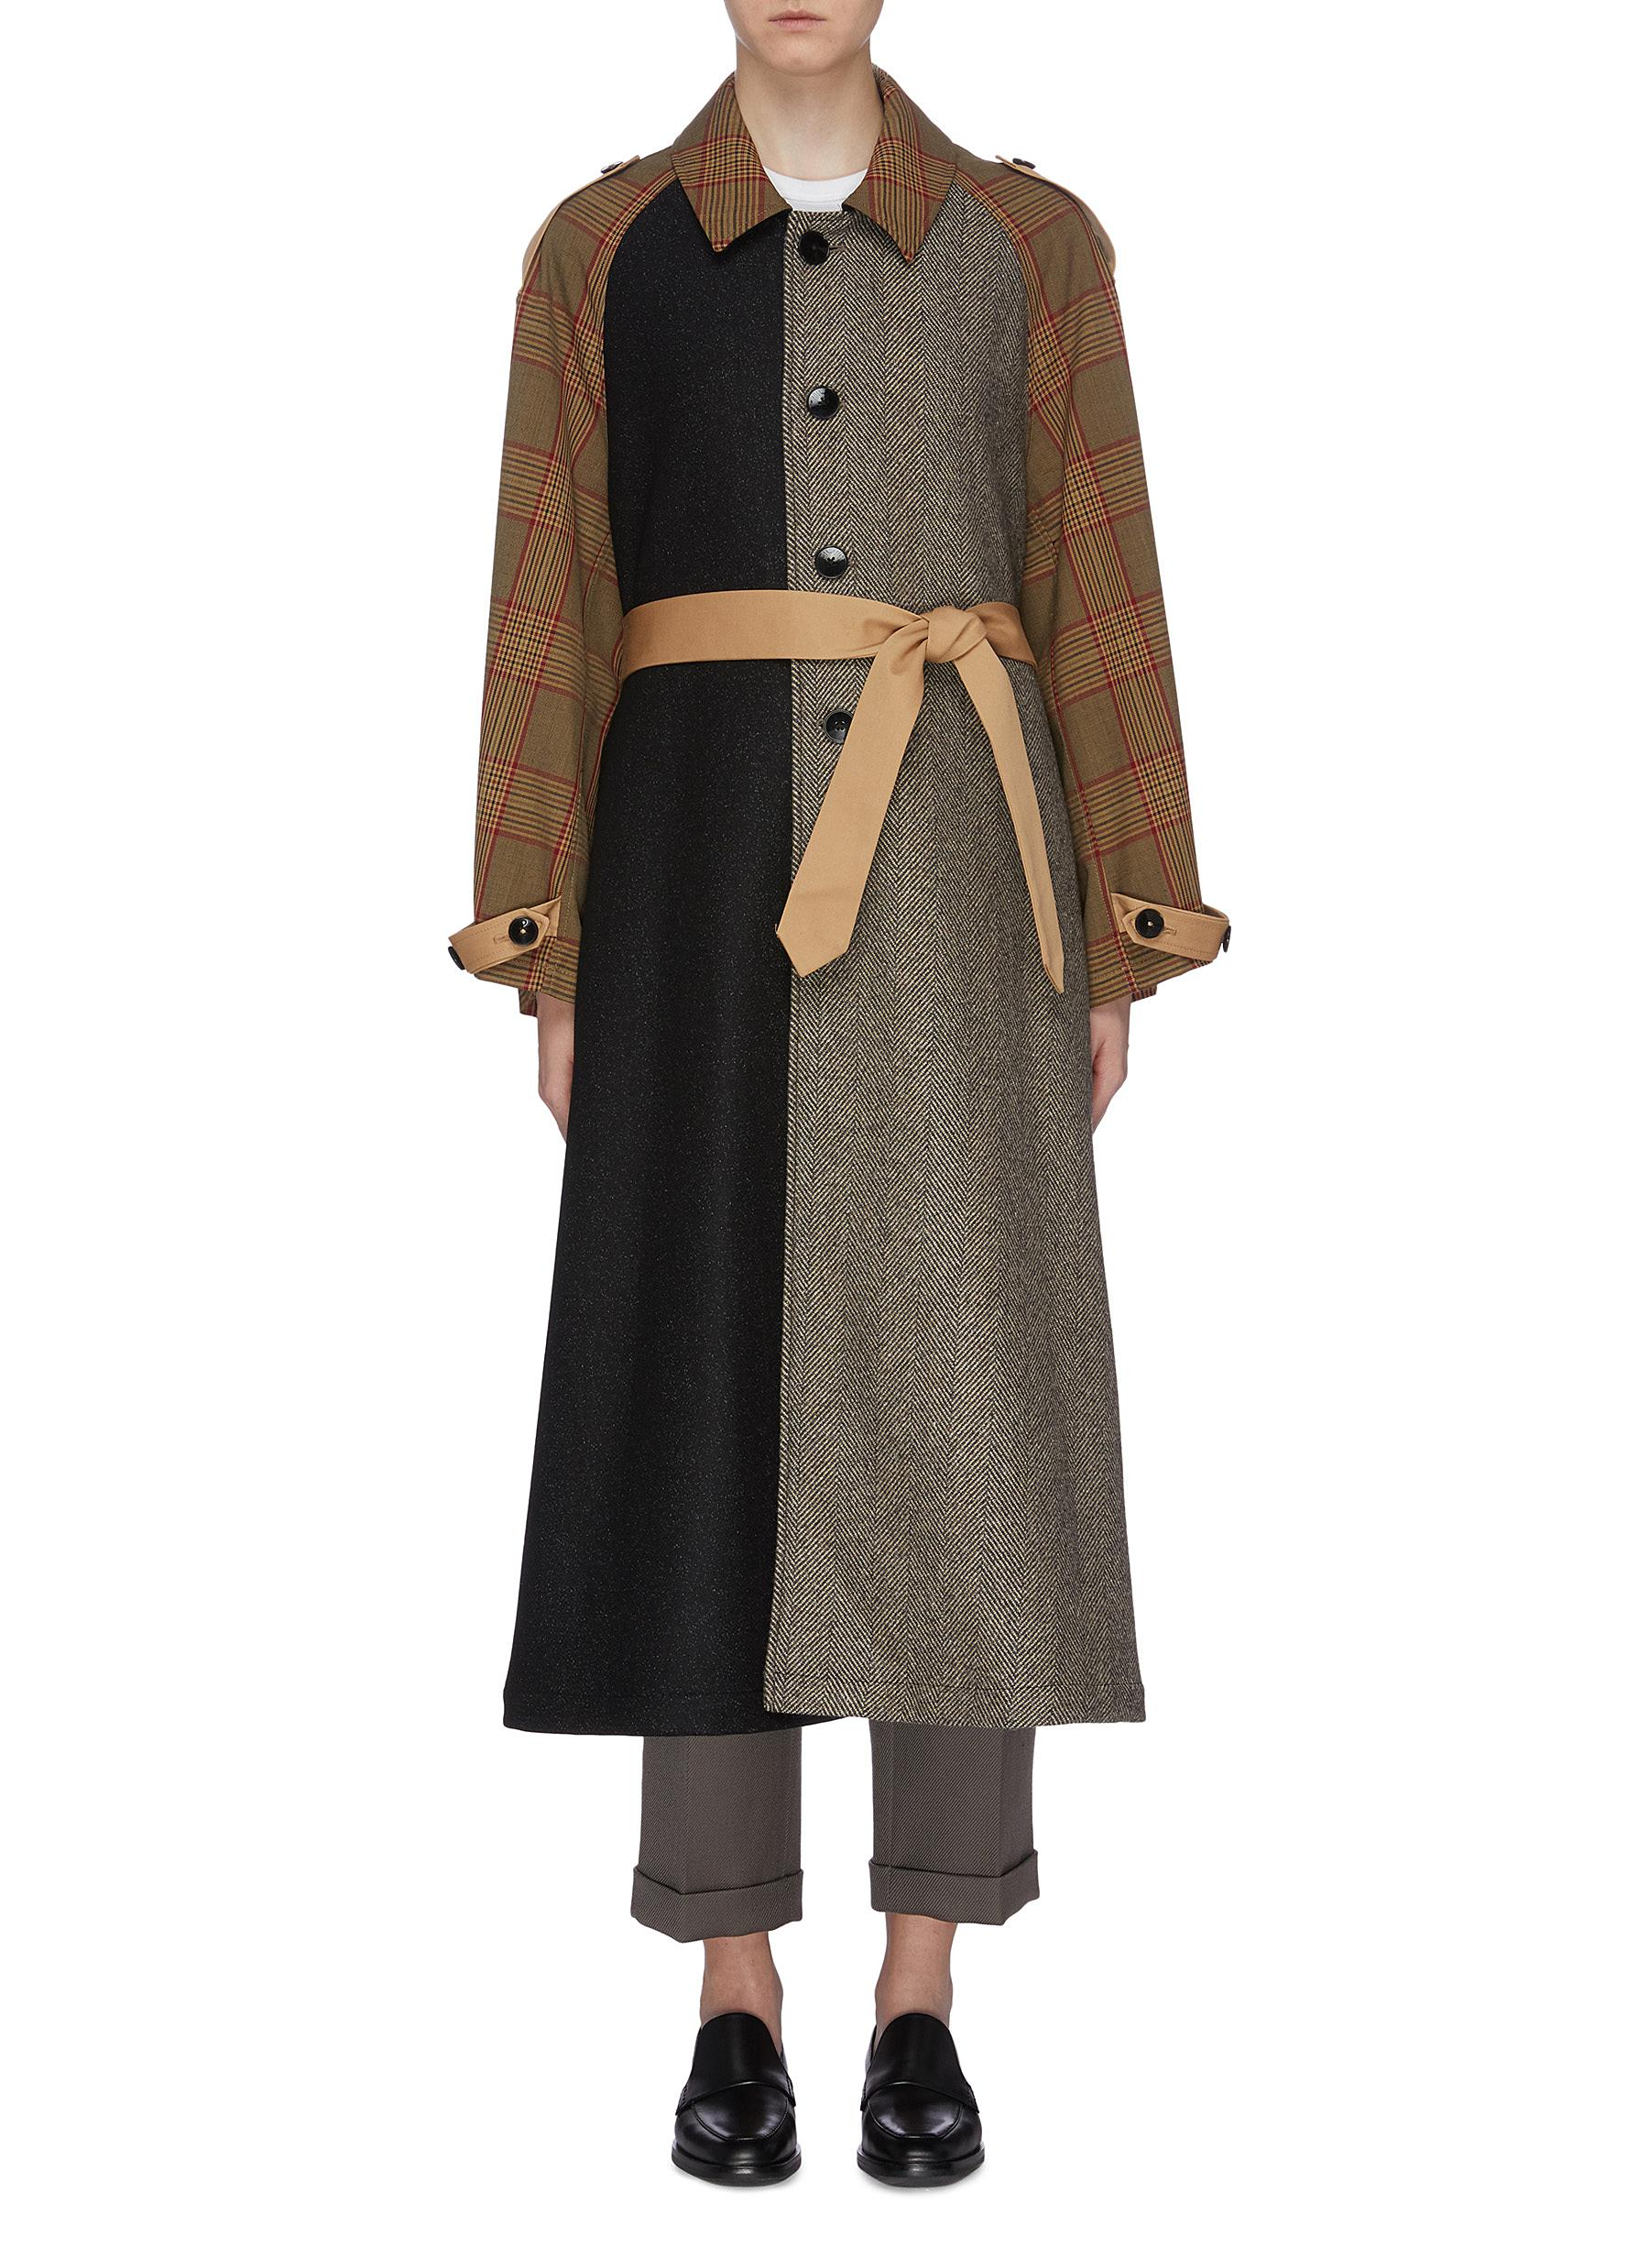 Vaghezza belted patchwork colourblock coat by Barena